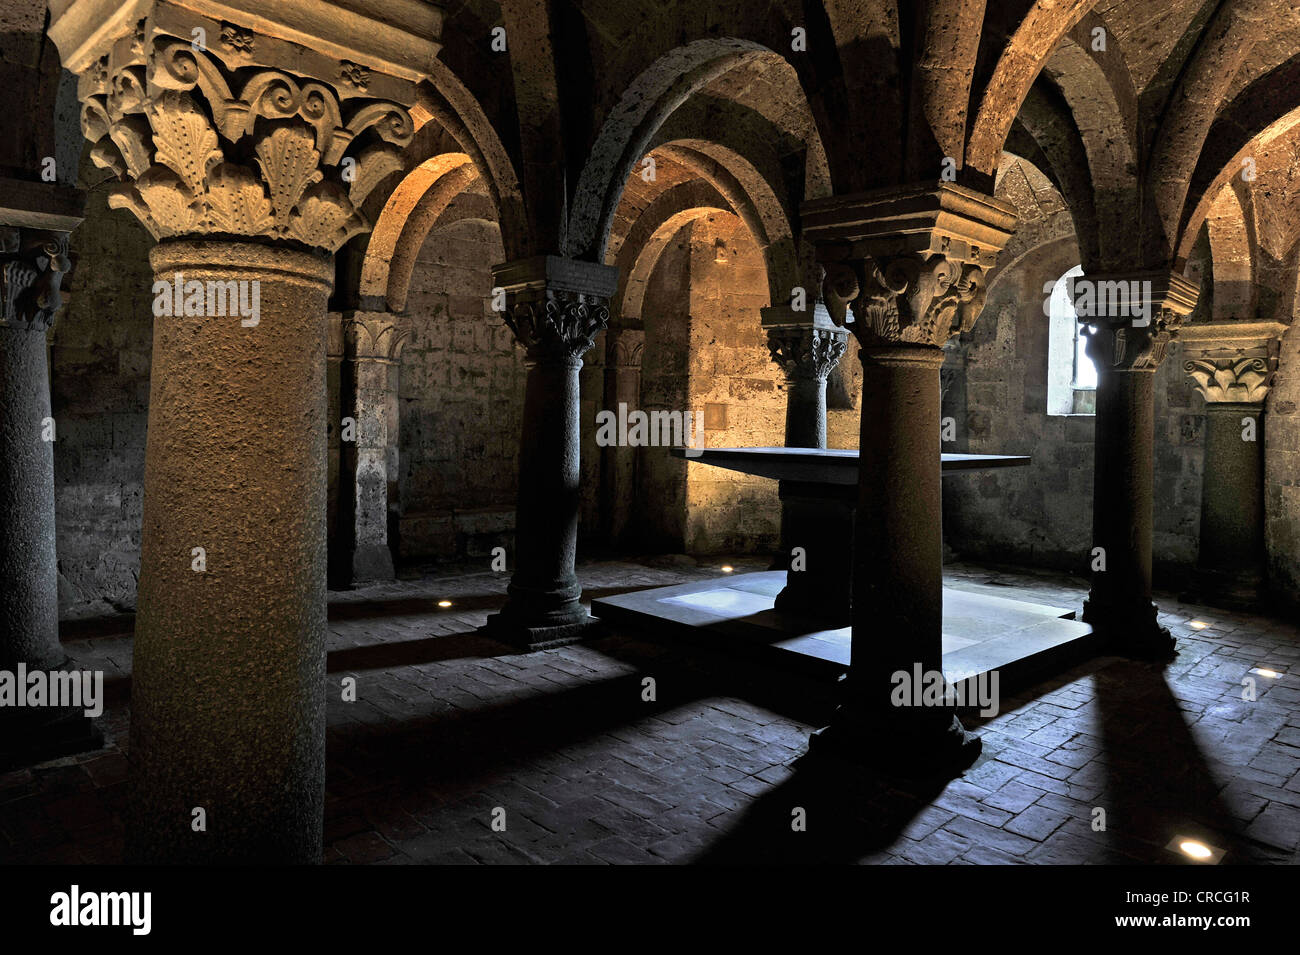 Altar in the underground pillared hall of the pagan crypt, 10th century, Cathedral of St. Sepulchre, Basilica Cattedrale - Stock Image